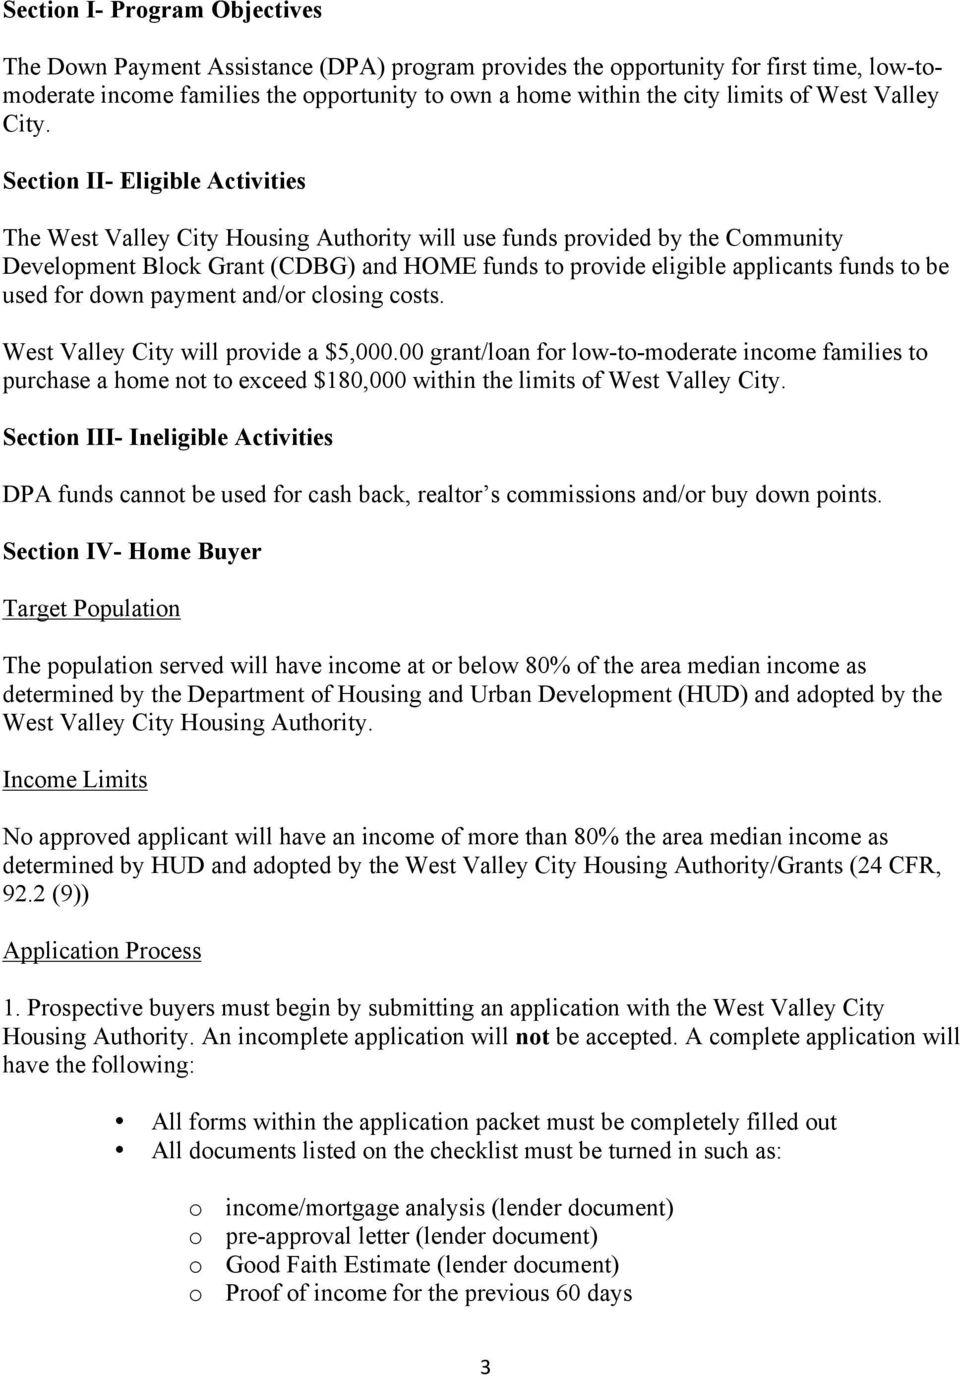 Section II- Eligible Activities The West Valley City Housing Authority will use funds provided by the Community Development Block Grant (CDBG) and HOME funds to provide eligible applicants funds to